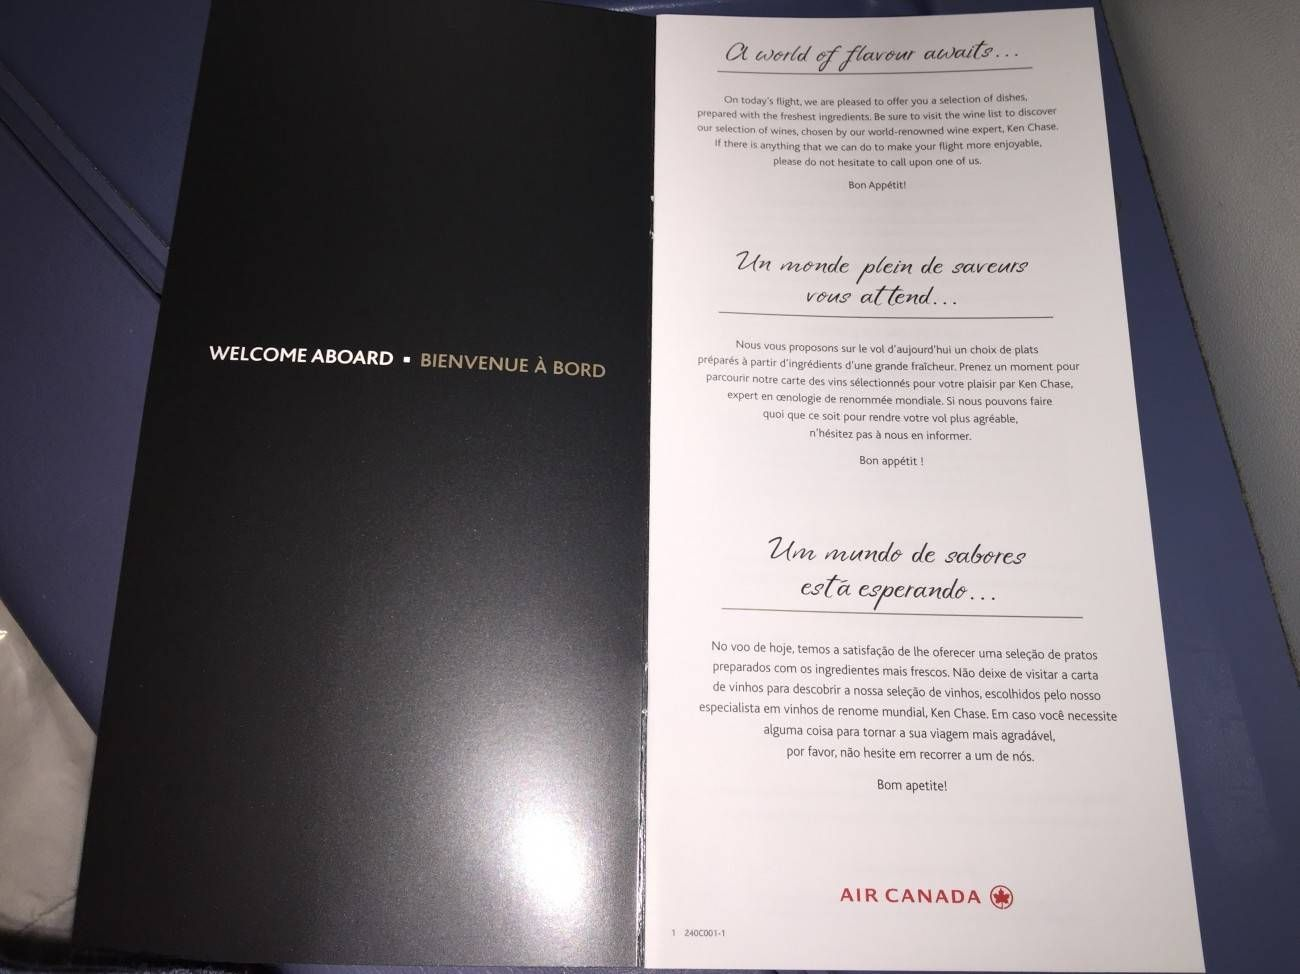 Air Canada B777 Business Class-09